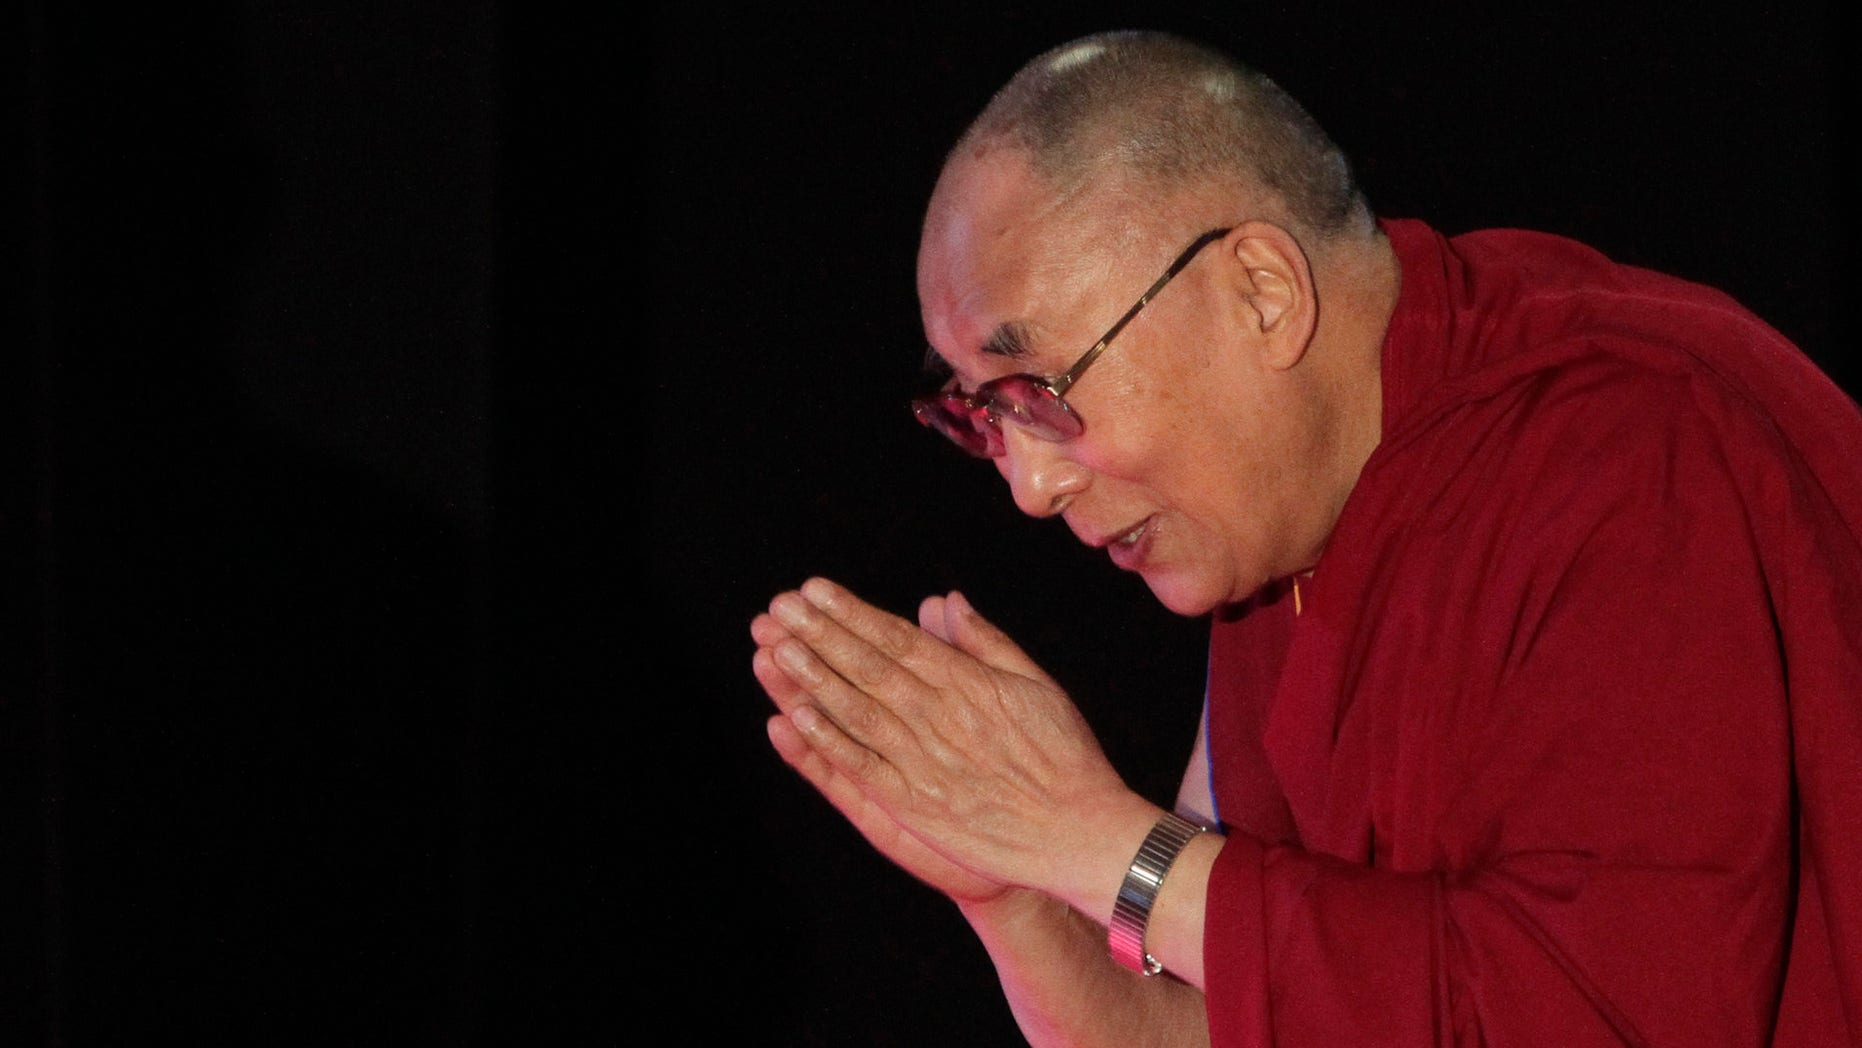 """Jan. 13, 2015: Tibetan spiritual leader the Dalai Lama greets the audience as he arrives to speak on """"A Human Approach to World Peace"""" at Presidency College in Kolkata, India."""